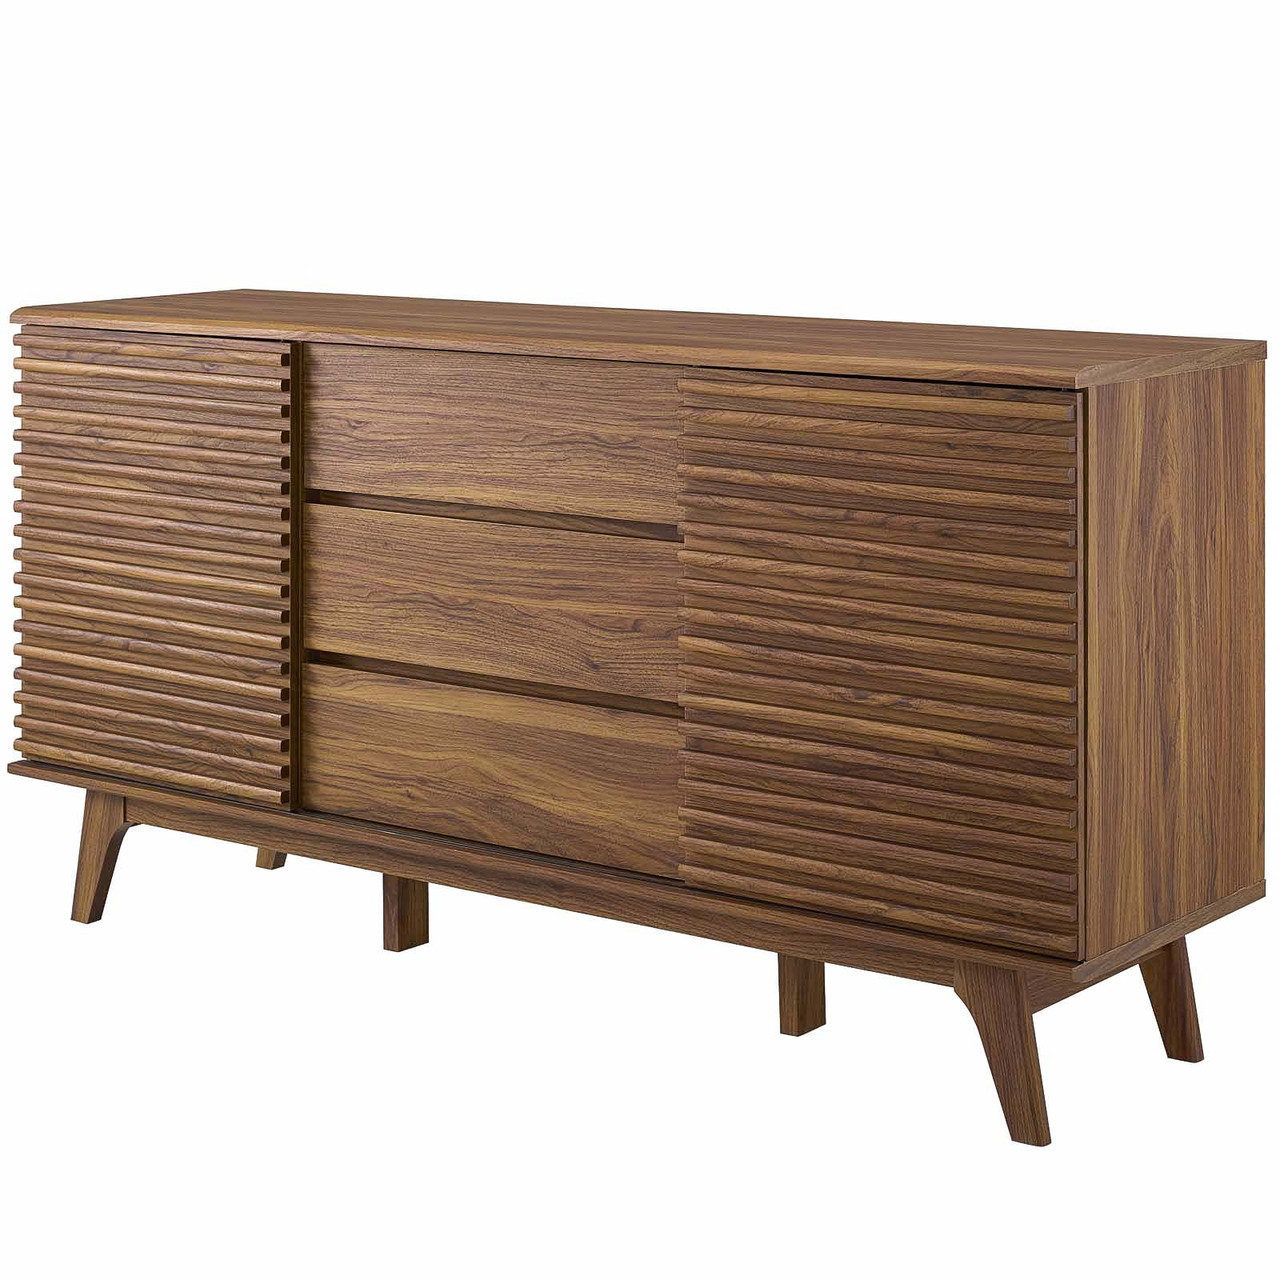 Render 63 Sideboard Buffet Table Or Tv Stand Wood Natural Walnut Brown 17993 House Bound